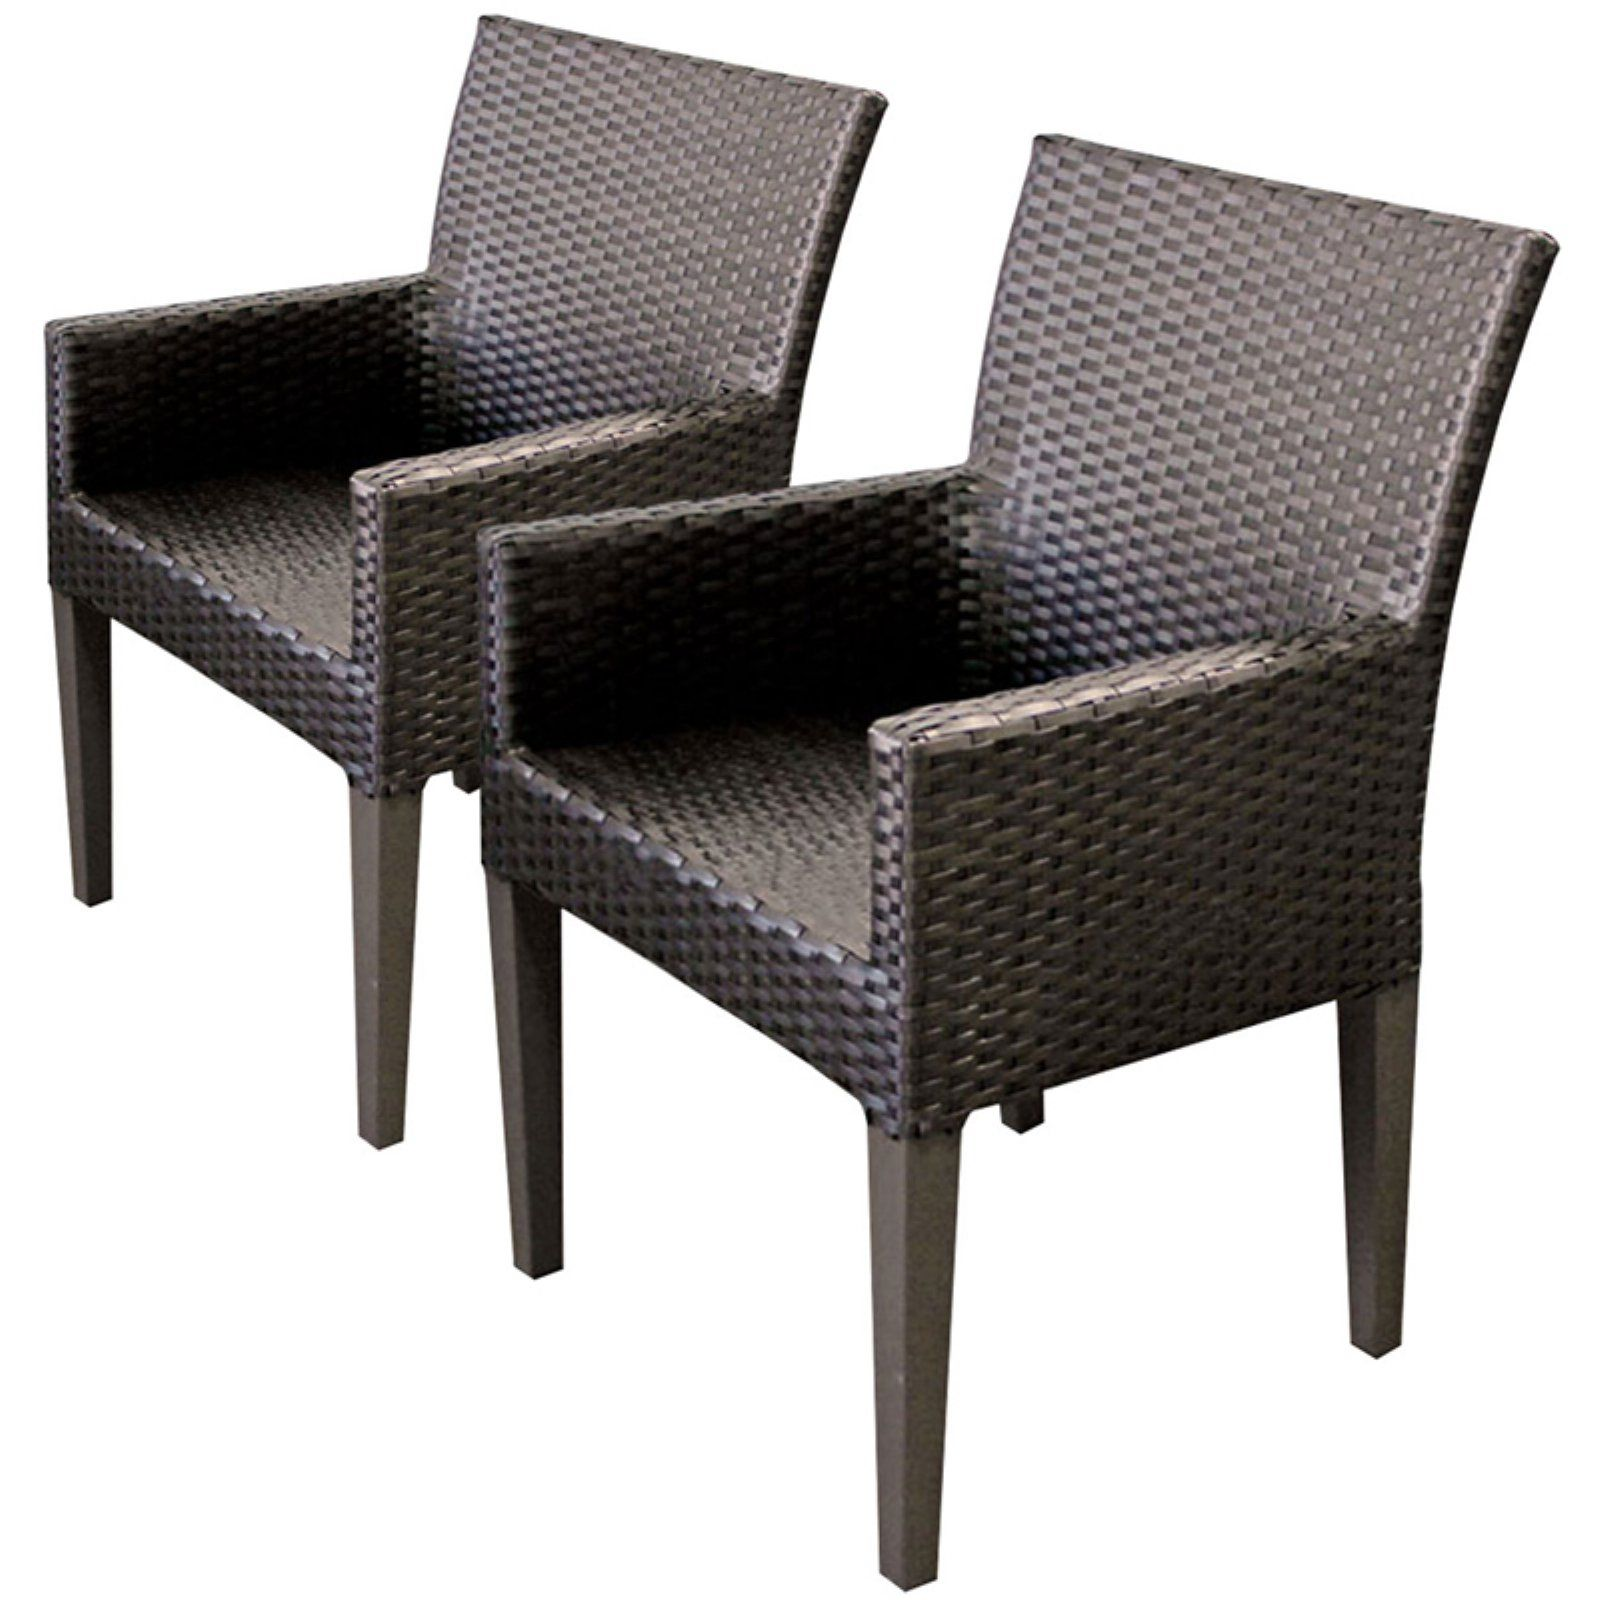 Tk Clics Napa Outdoor Dining Chair